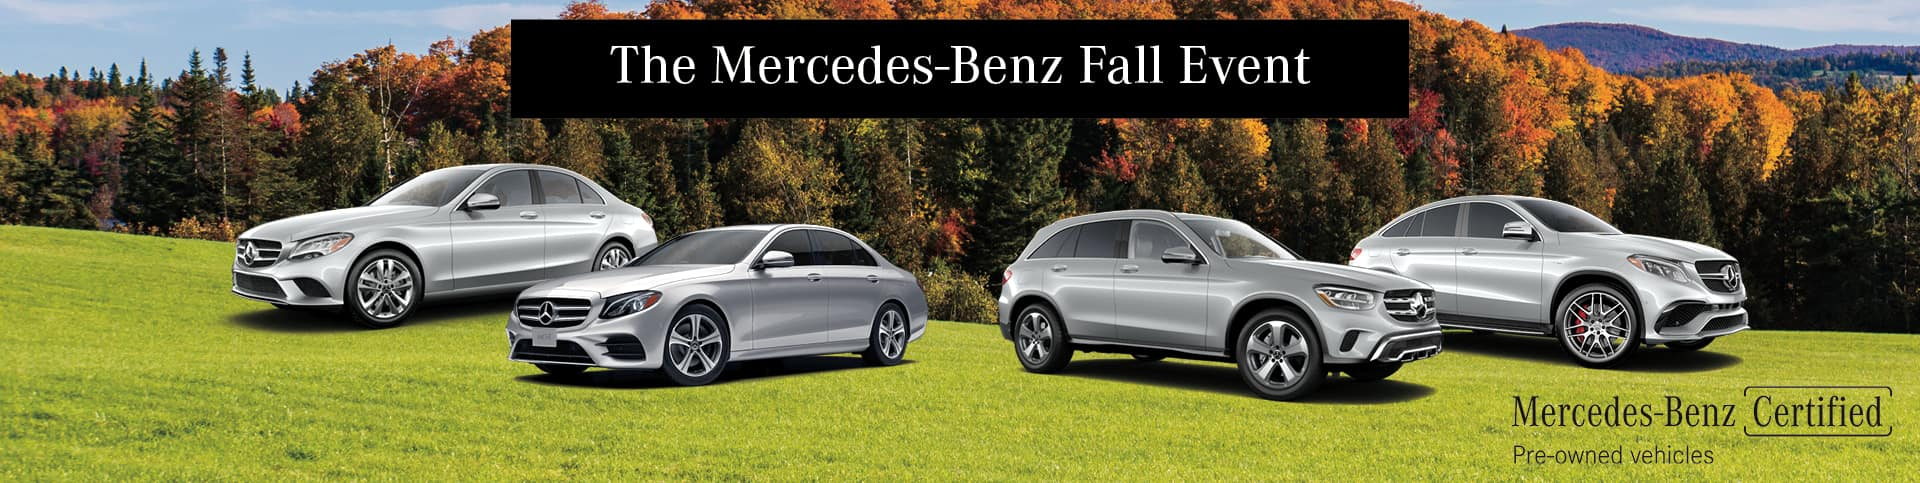 THE MB FALL PRE OWNED IMAGE